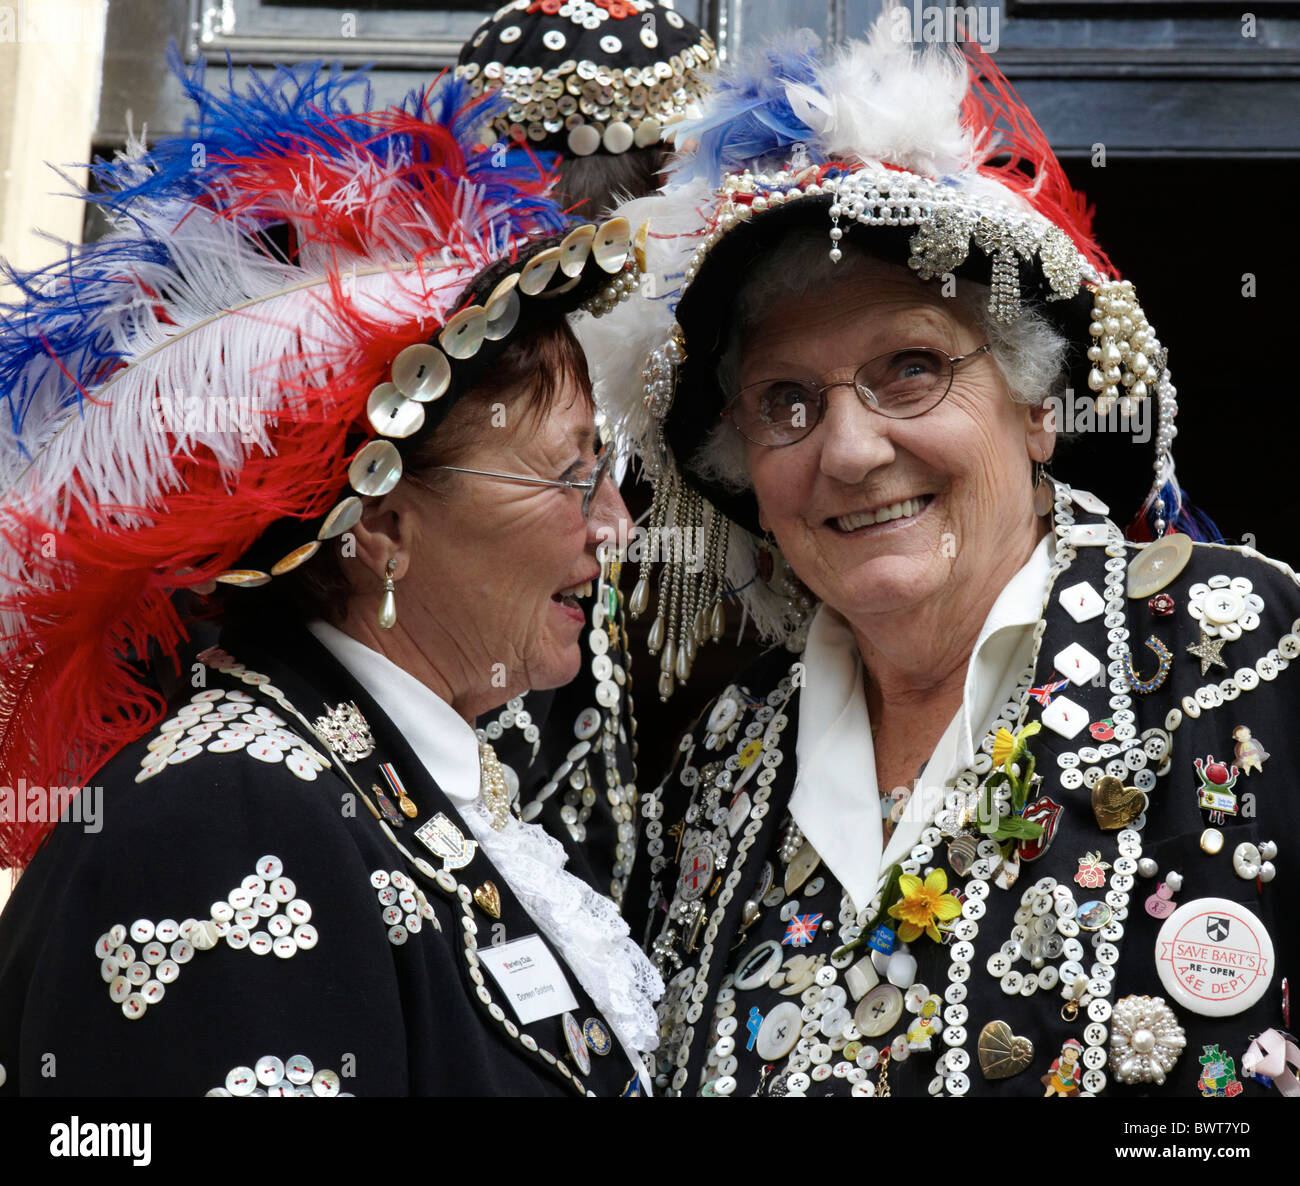 Traditional Pearly Queens London UK Europe - Stock Image